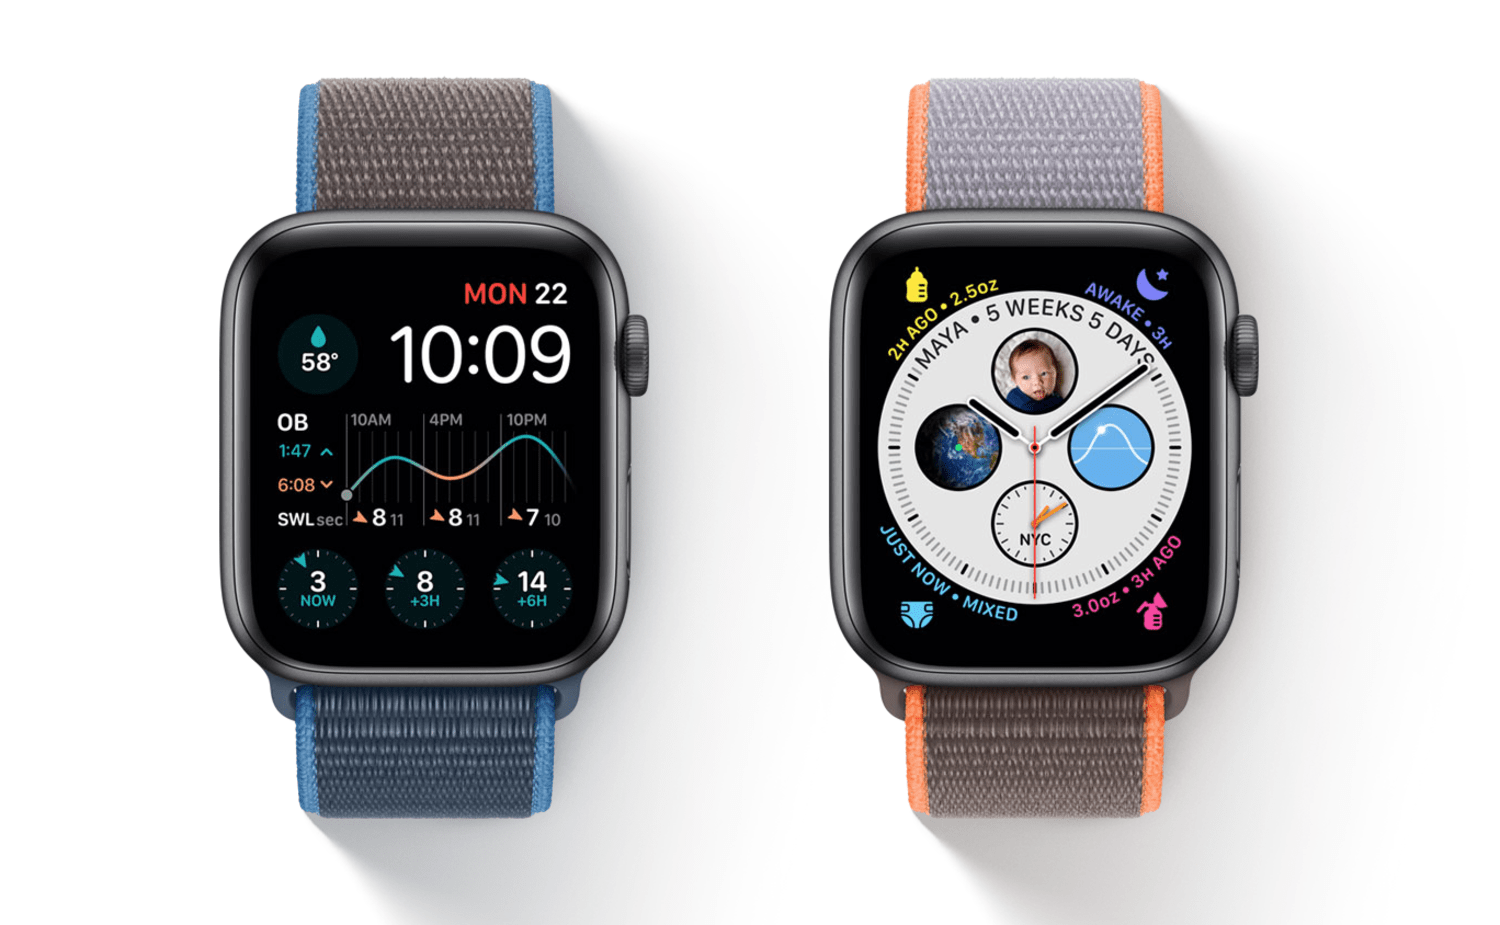 apple-watchos-7-available-for-public-beta-testing-now-20200810-4